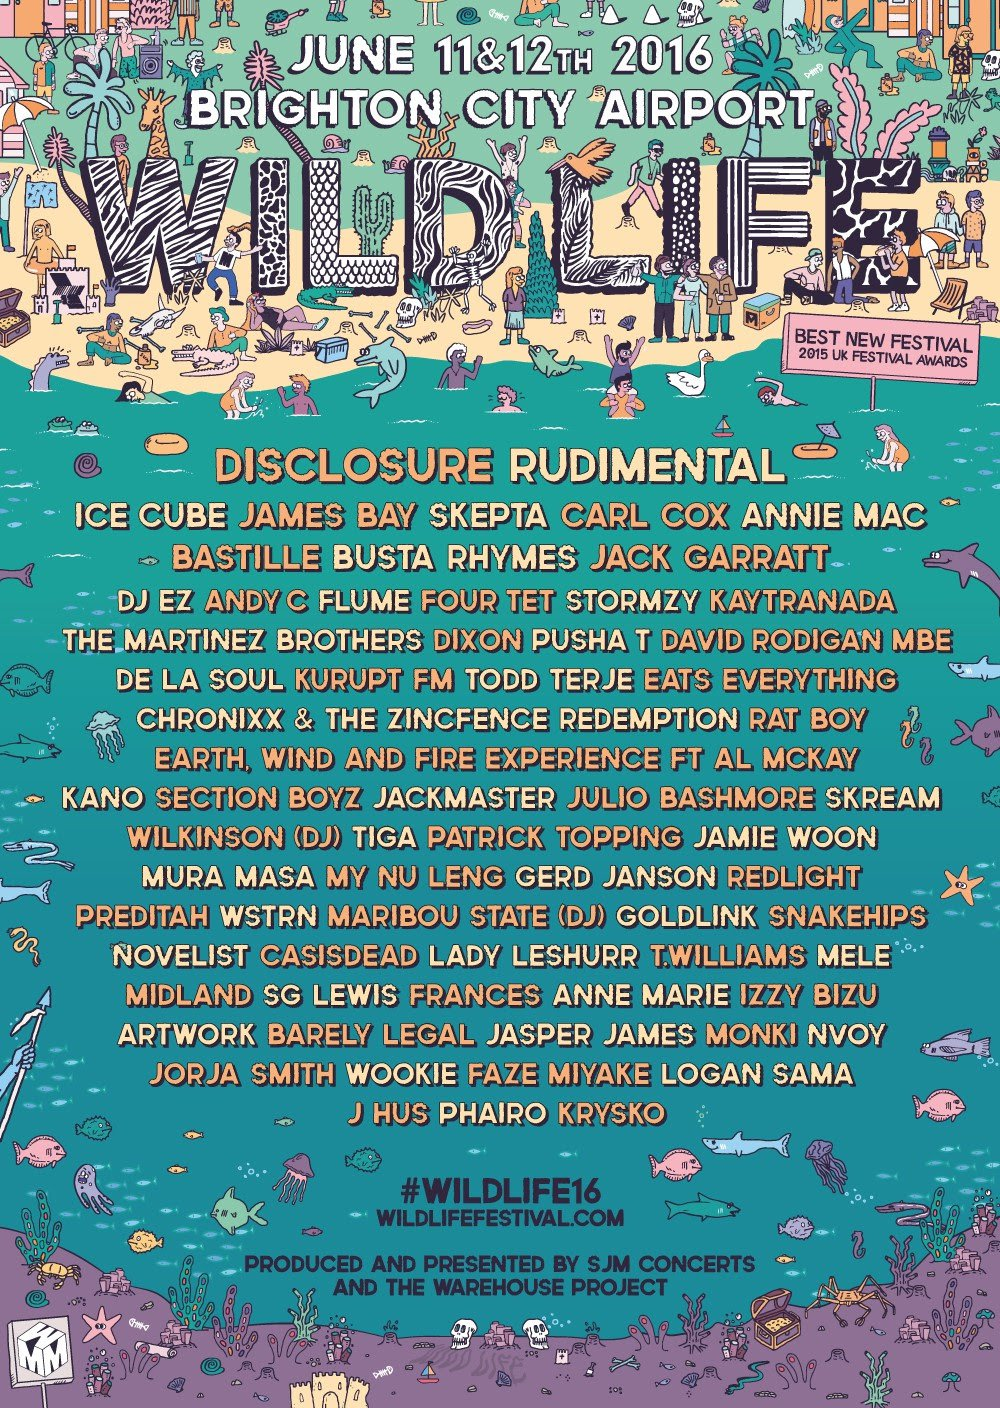 Wildlife Festival Returns In 2016 With An Ever-Eclectic Lineup